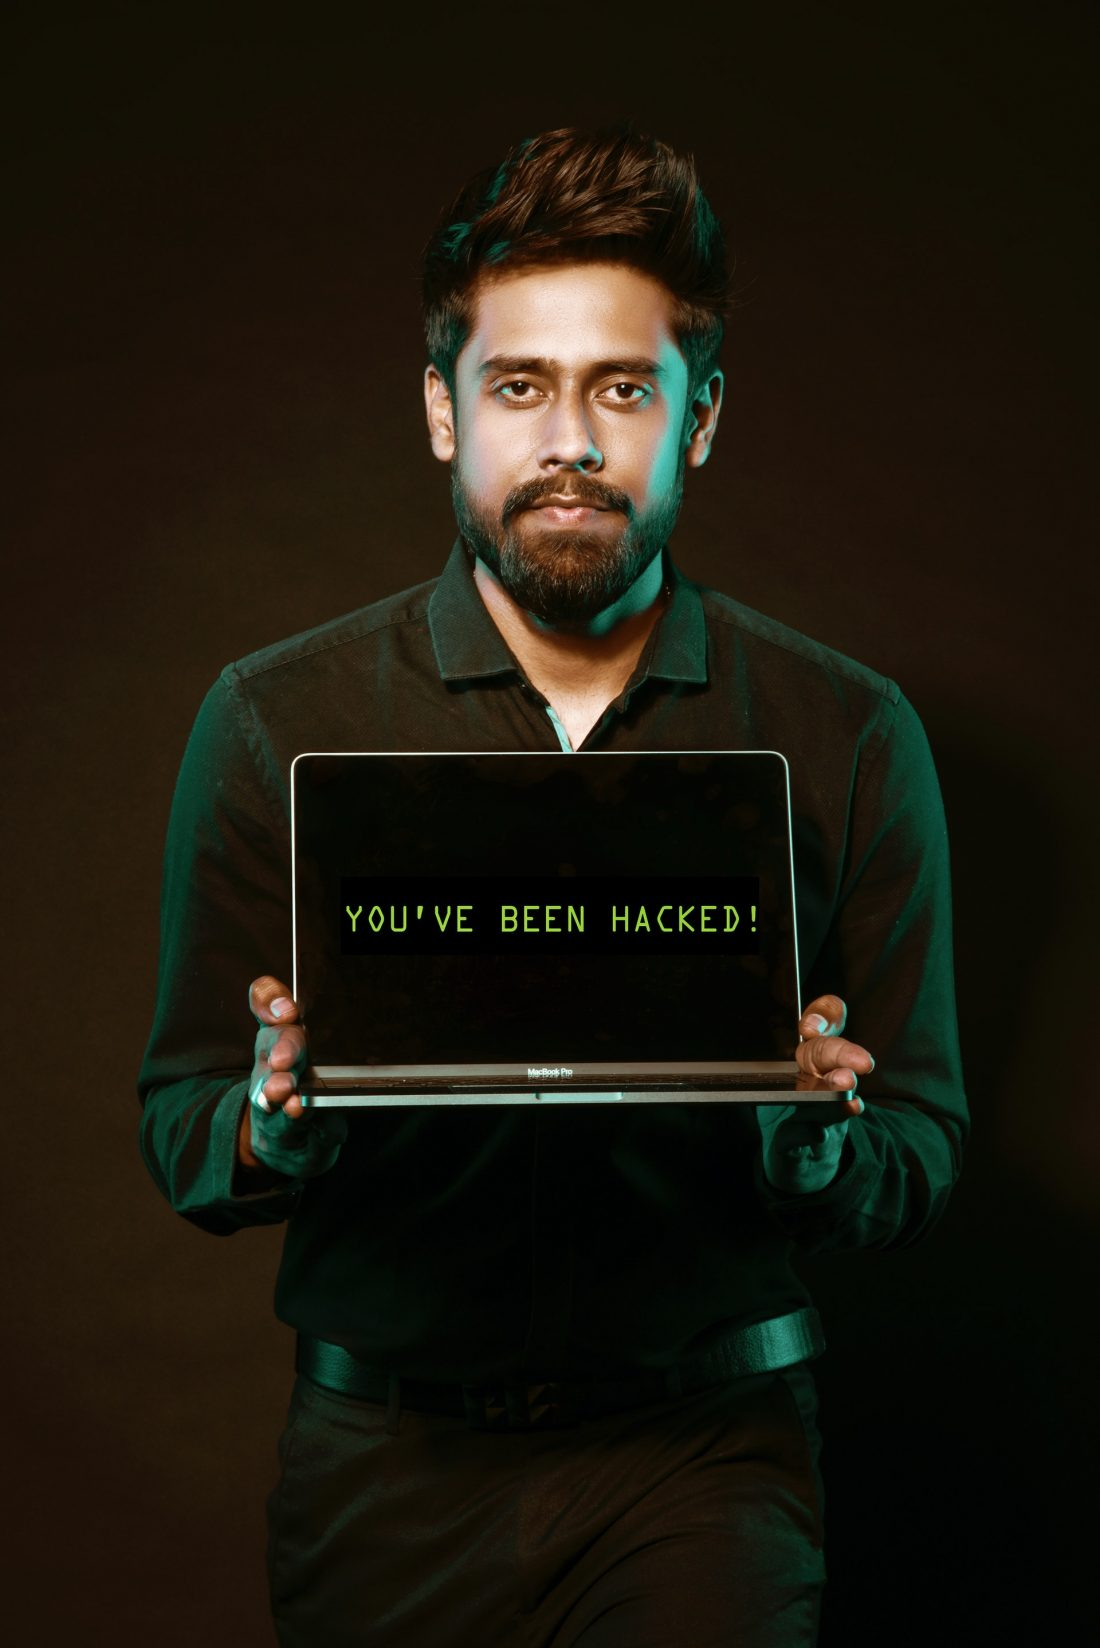 Man holding laptop showing you have been hacked trought your smart home devices